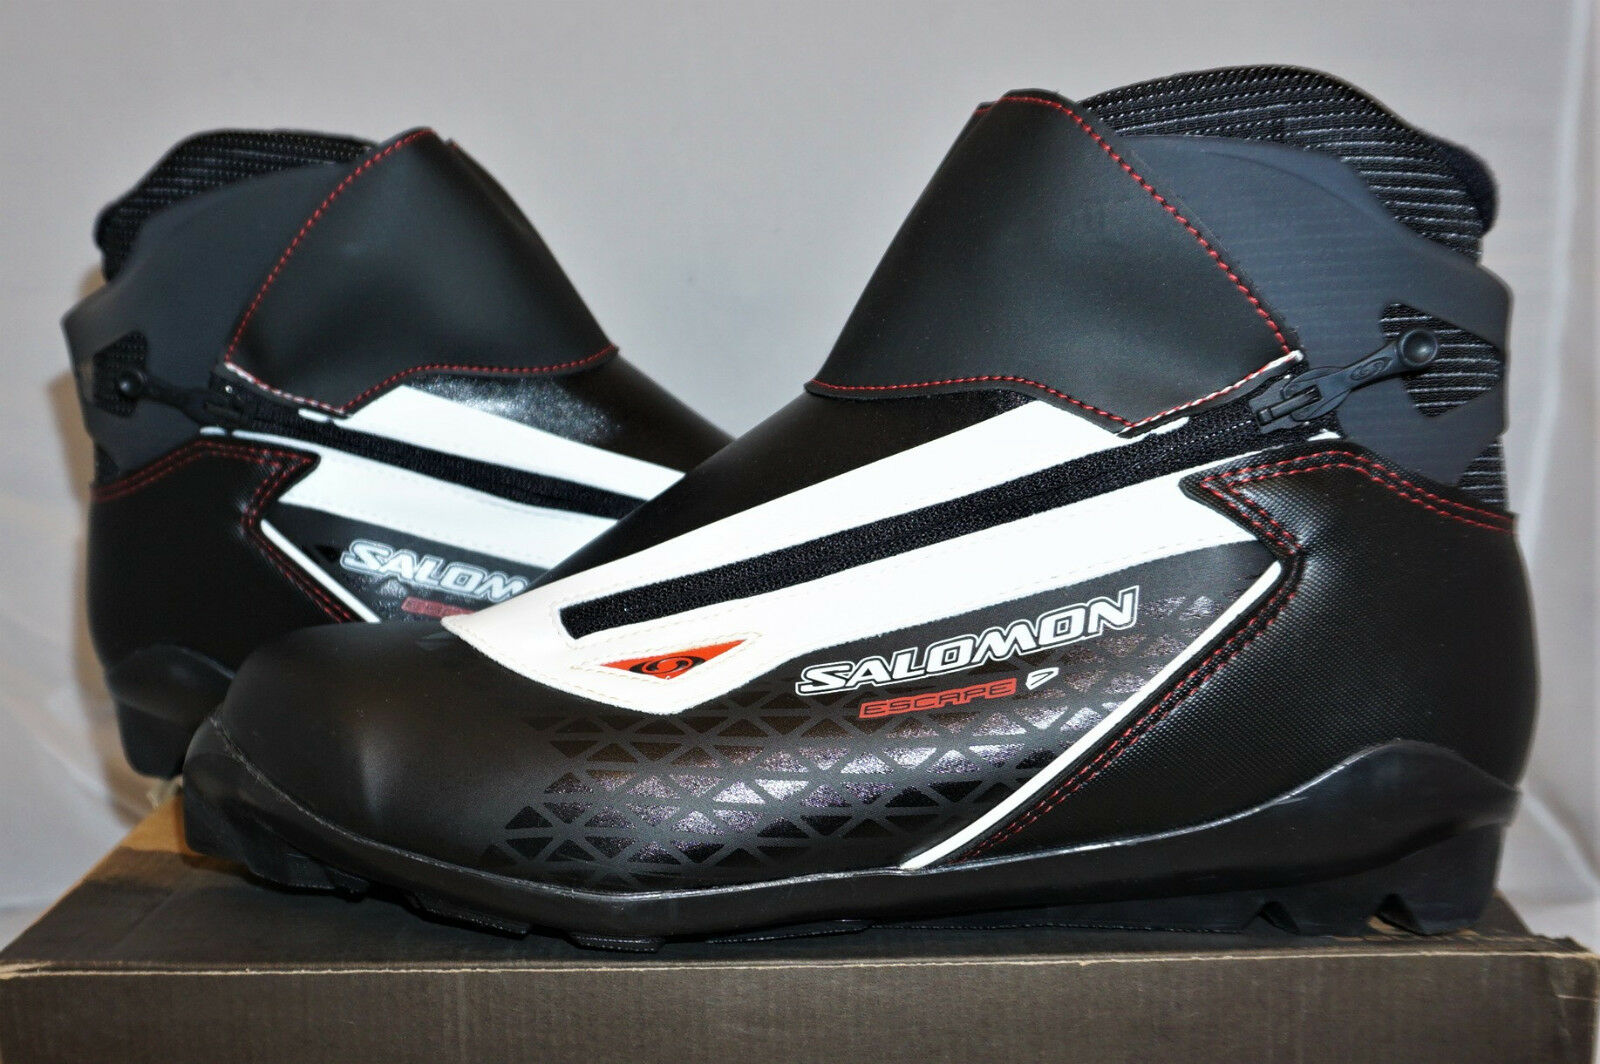 Salomon Escape Escape Escape 7 UK 13,5 EU 49 1 3 USA 14 Langlaufschuhe NEU   2924 7fe781